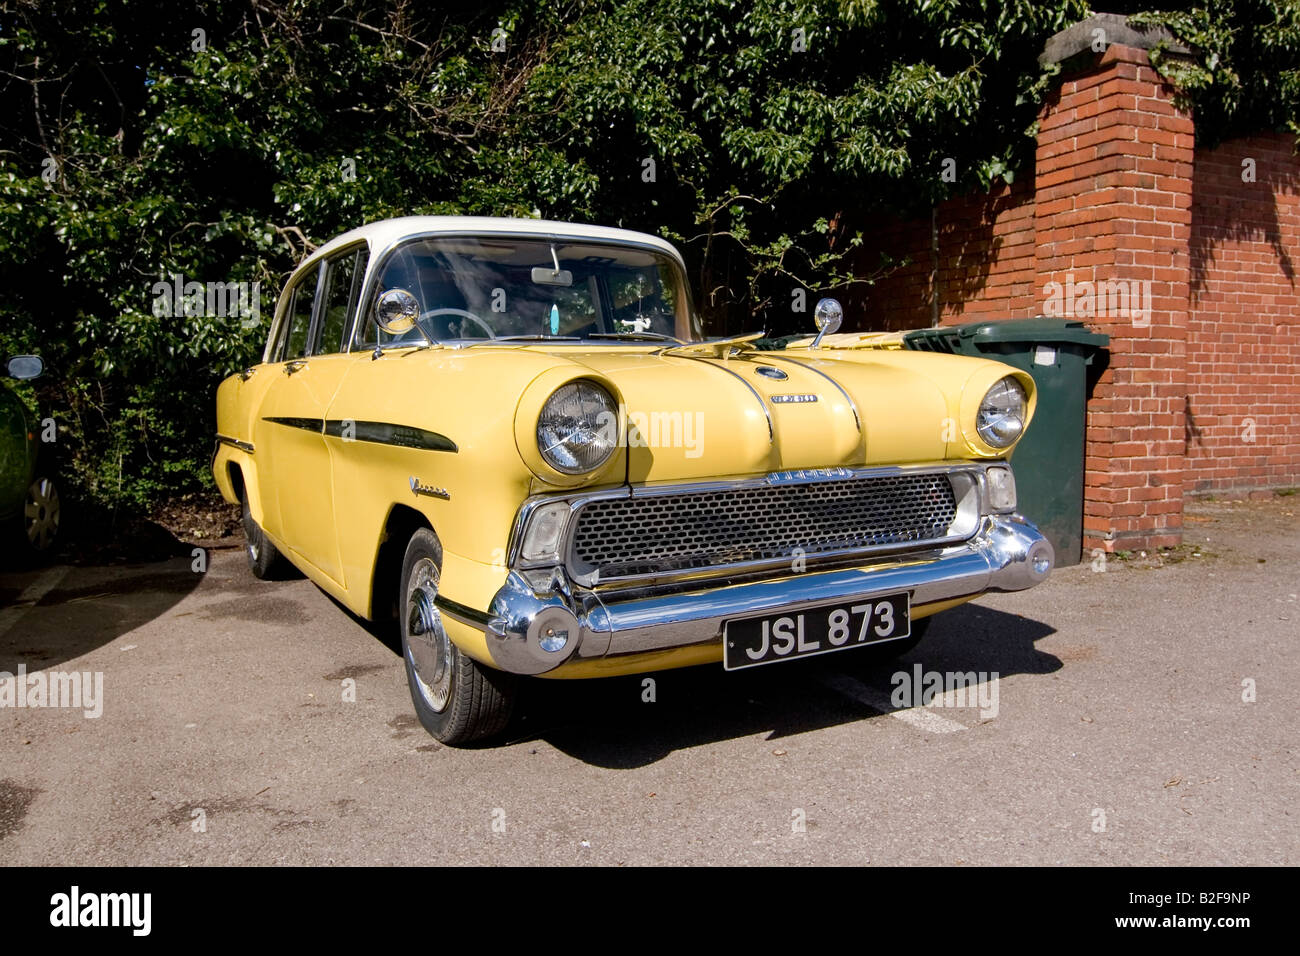 Old-fashioned car parked in driveway, Vauxhall Victor vintage ...